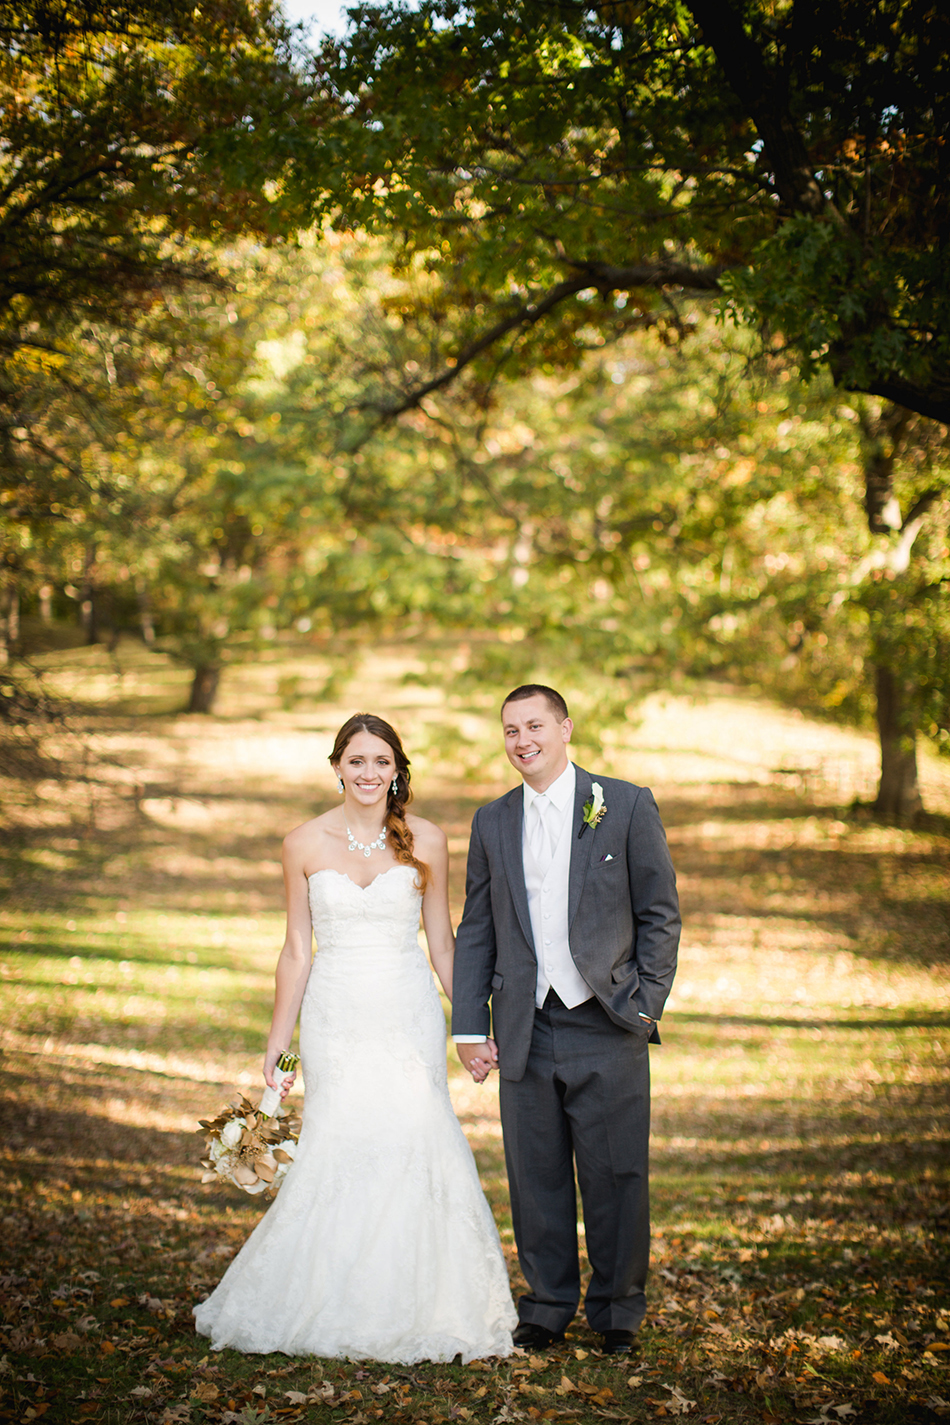 watters_minneapolis_realwedding09.jpg